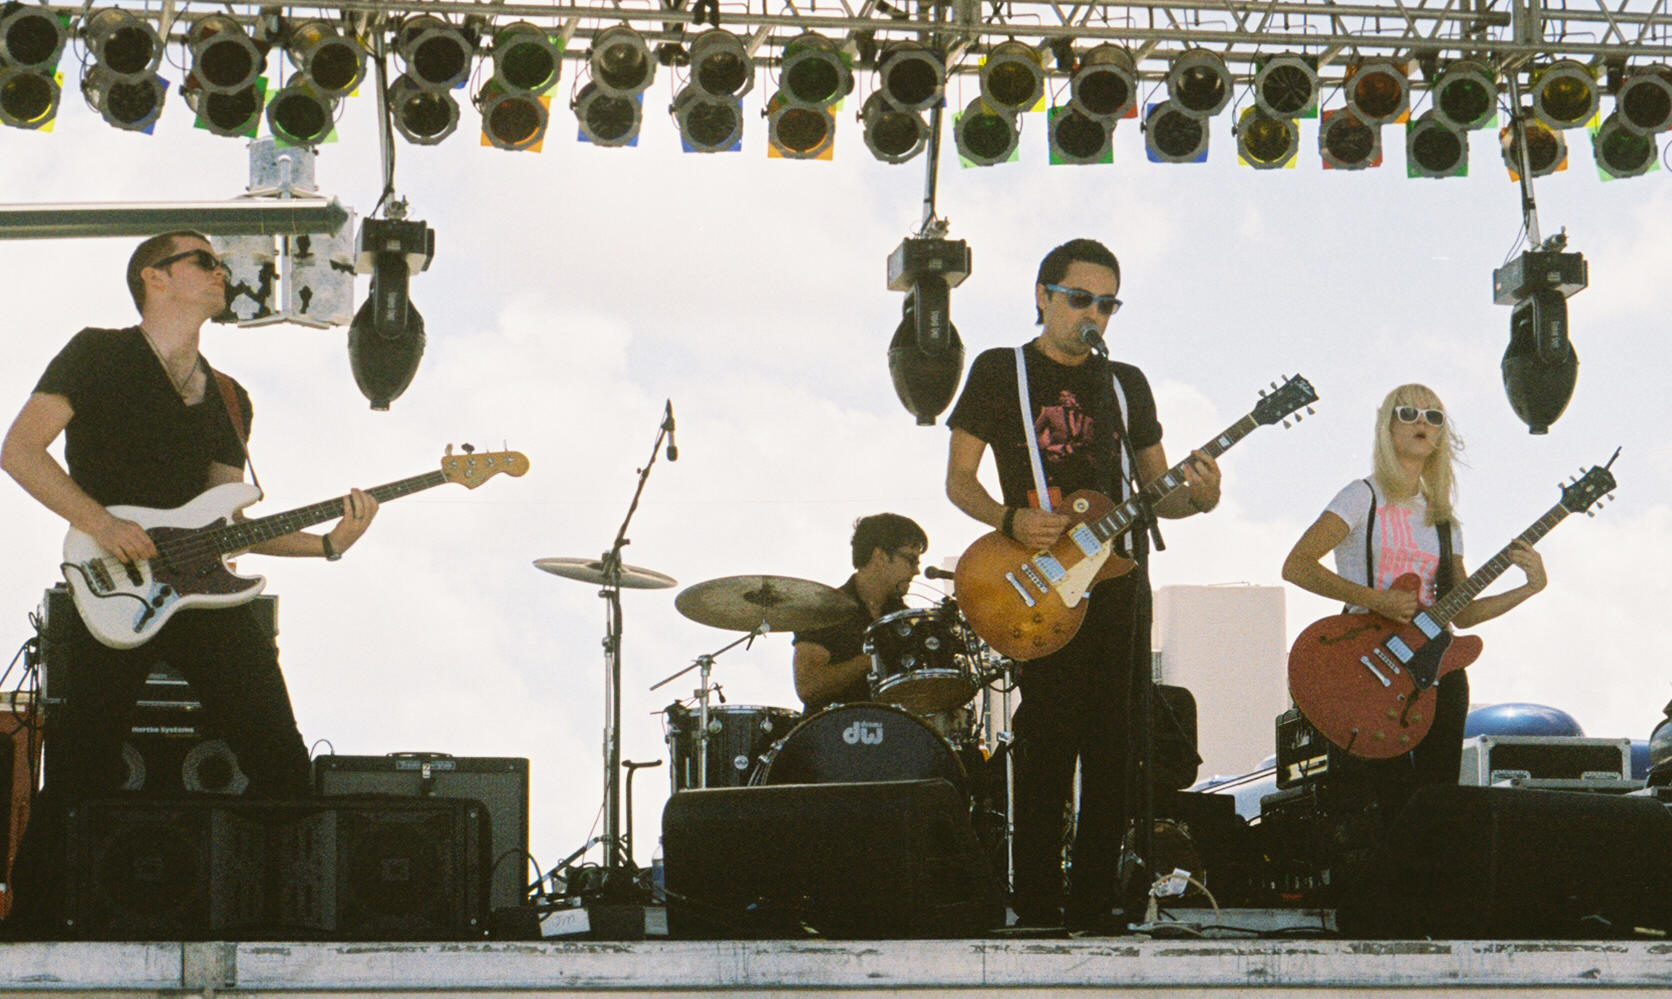 The Pretty Faces at Sunfest: (l-r) Phil Dunne (bass), Tom Thorslund (drums/vocal), Jeph Thorslund (guitar/vocals), Hannah Thorslund (guitar/vocals)